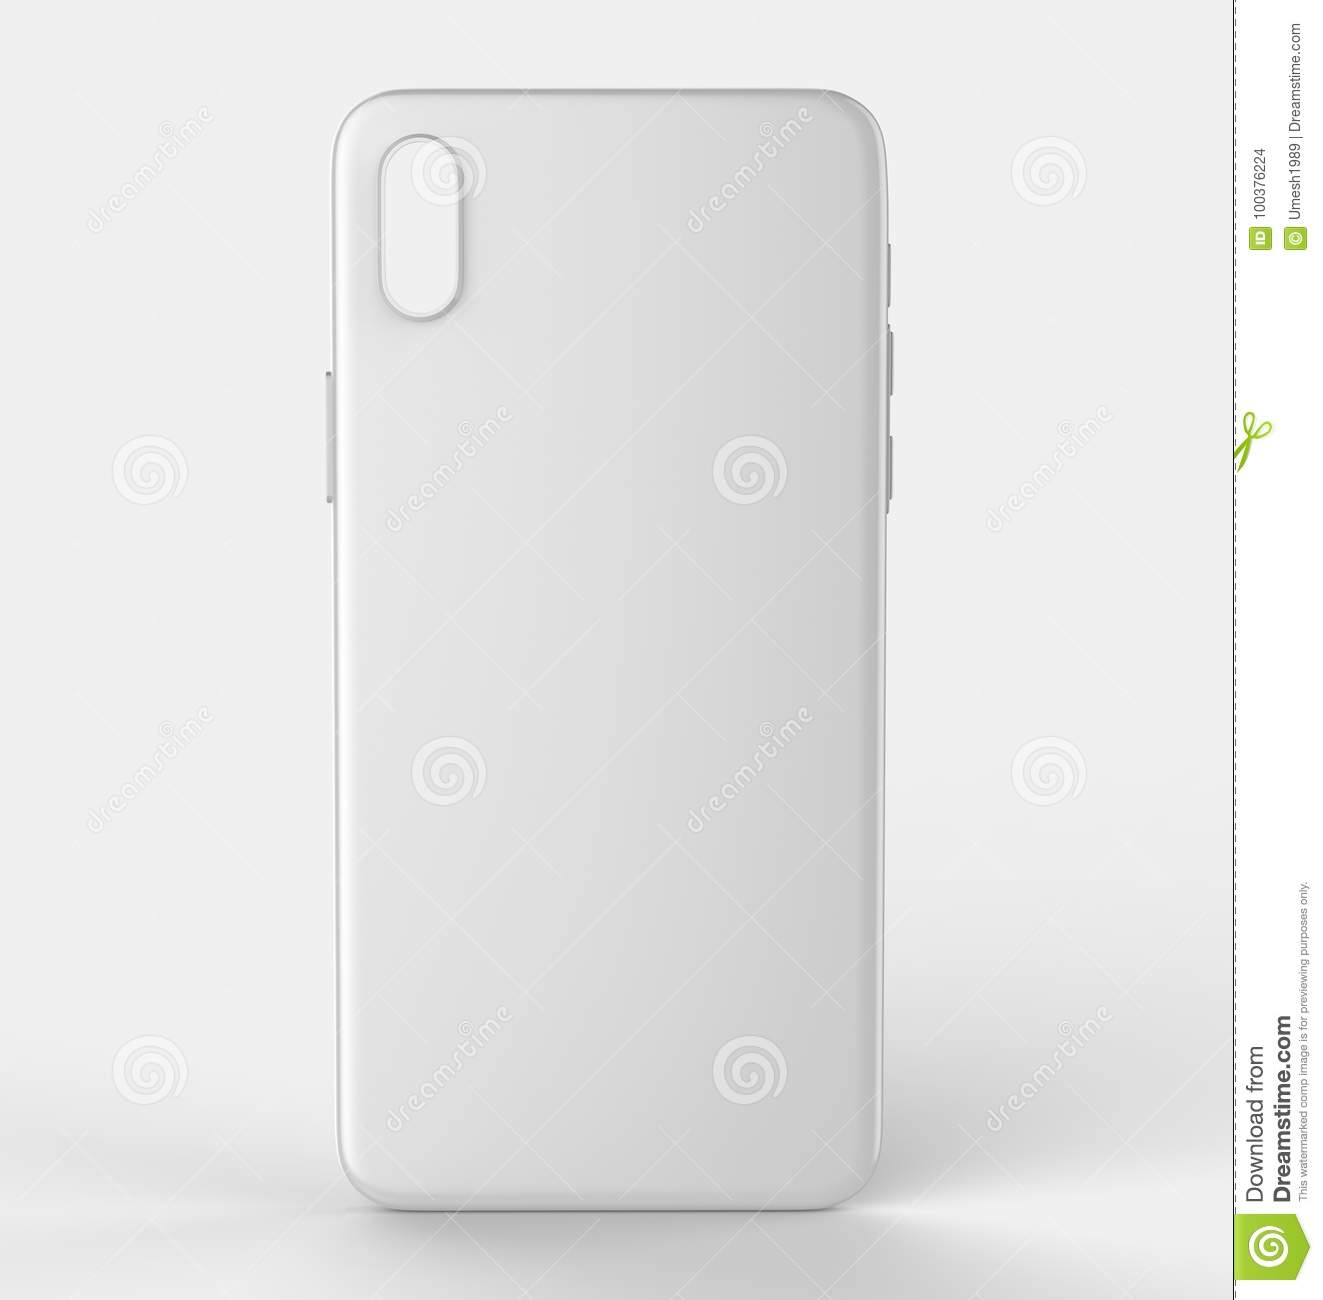 blank white smart phone x mobile back cover or case for design